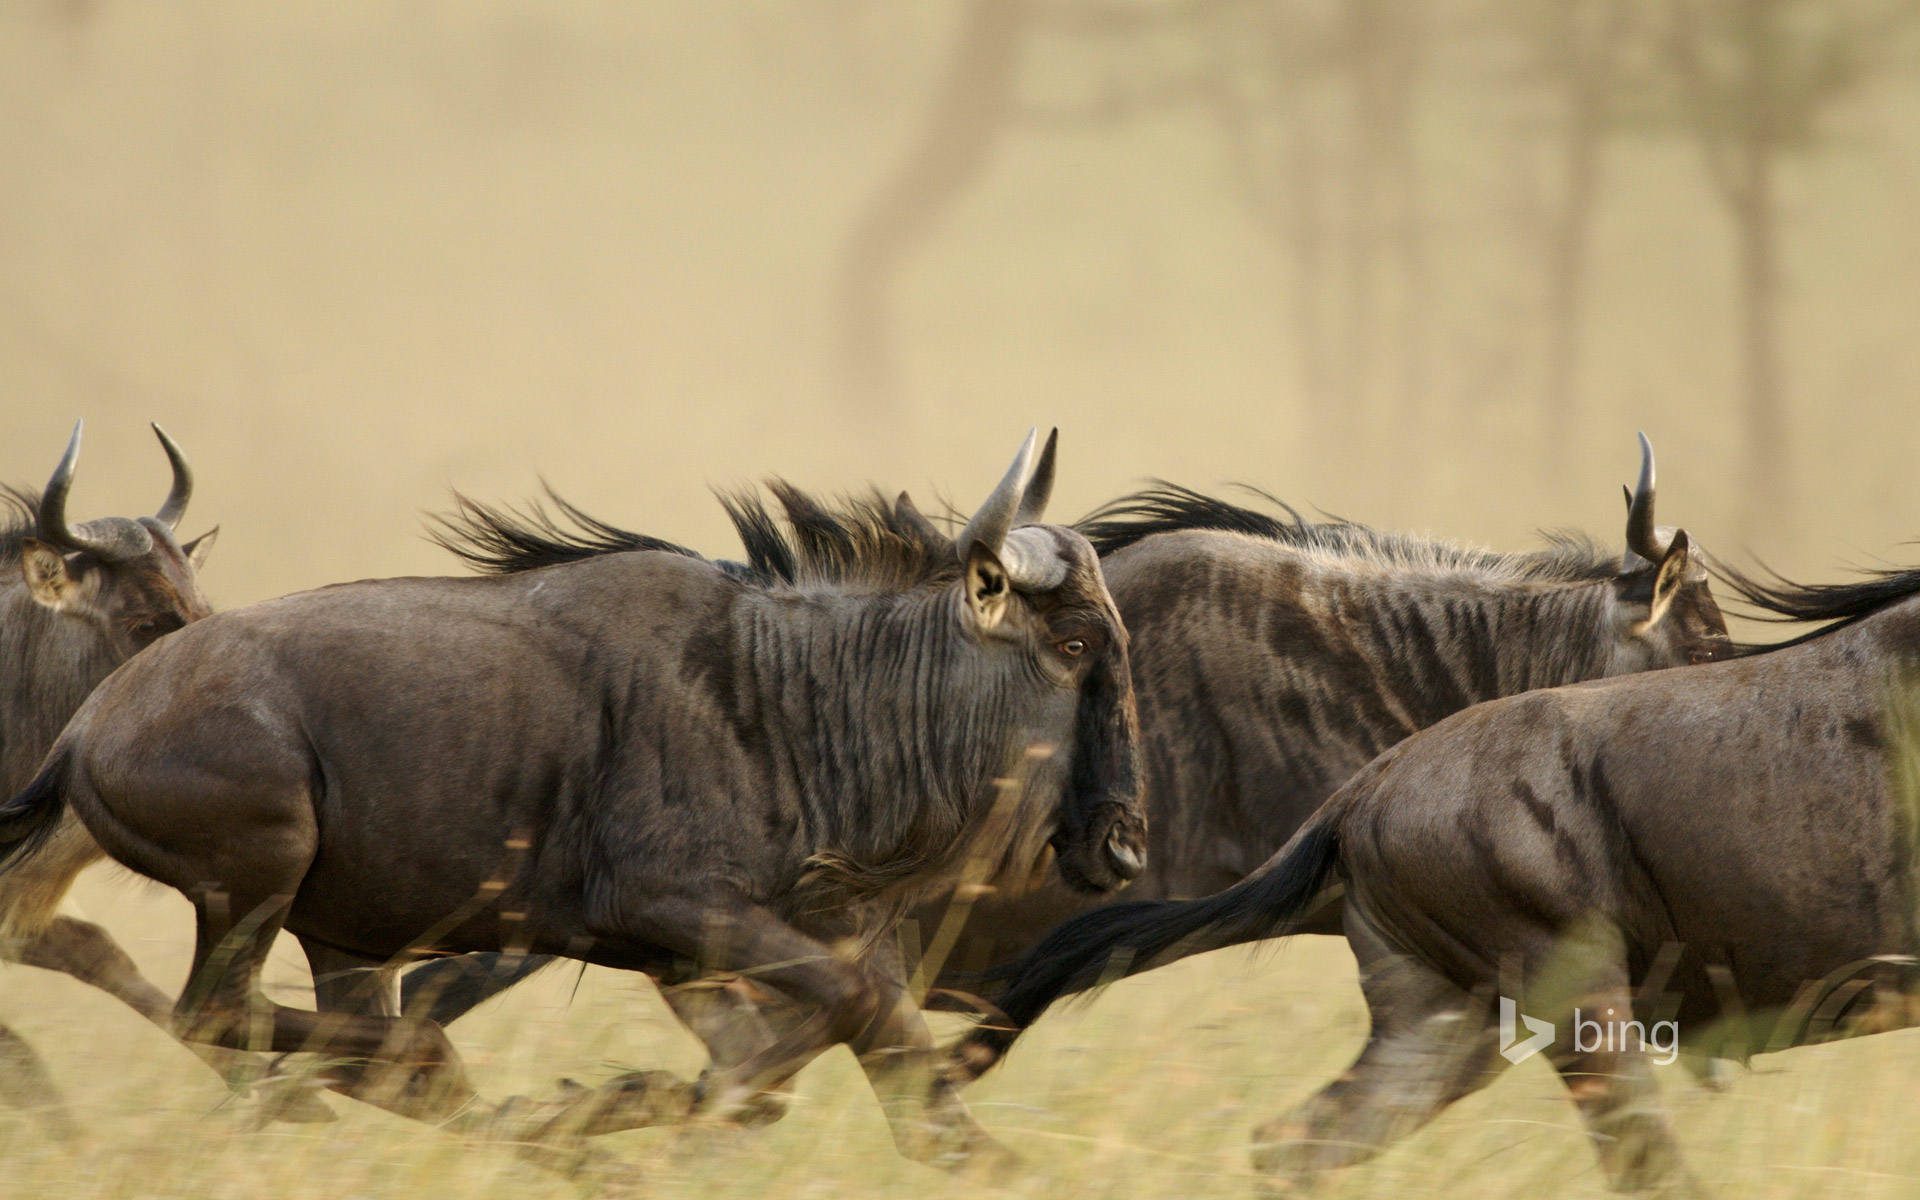 Blue wildebeests on the Musabi Plains in the Serengeti National Park, Tanzania